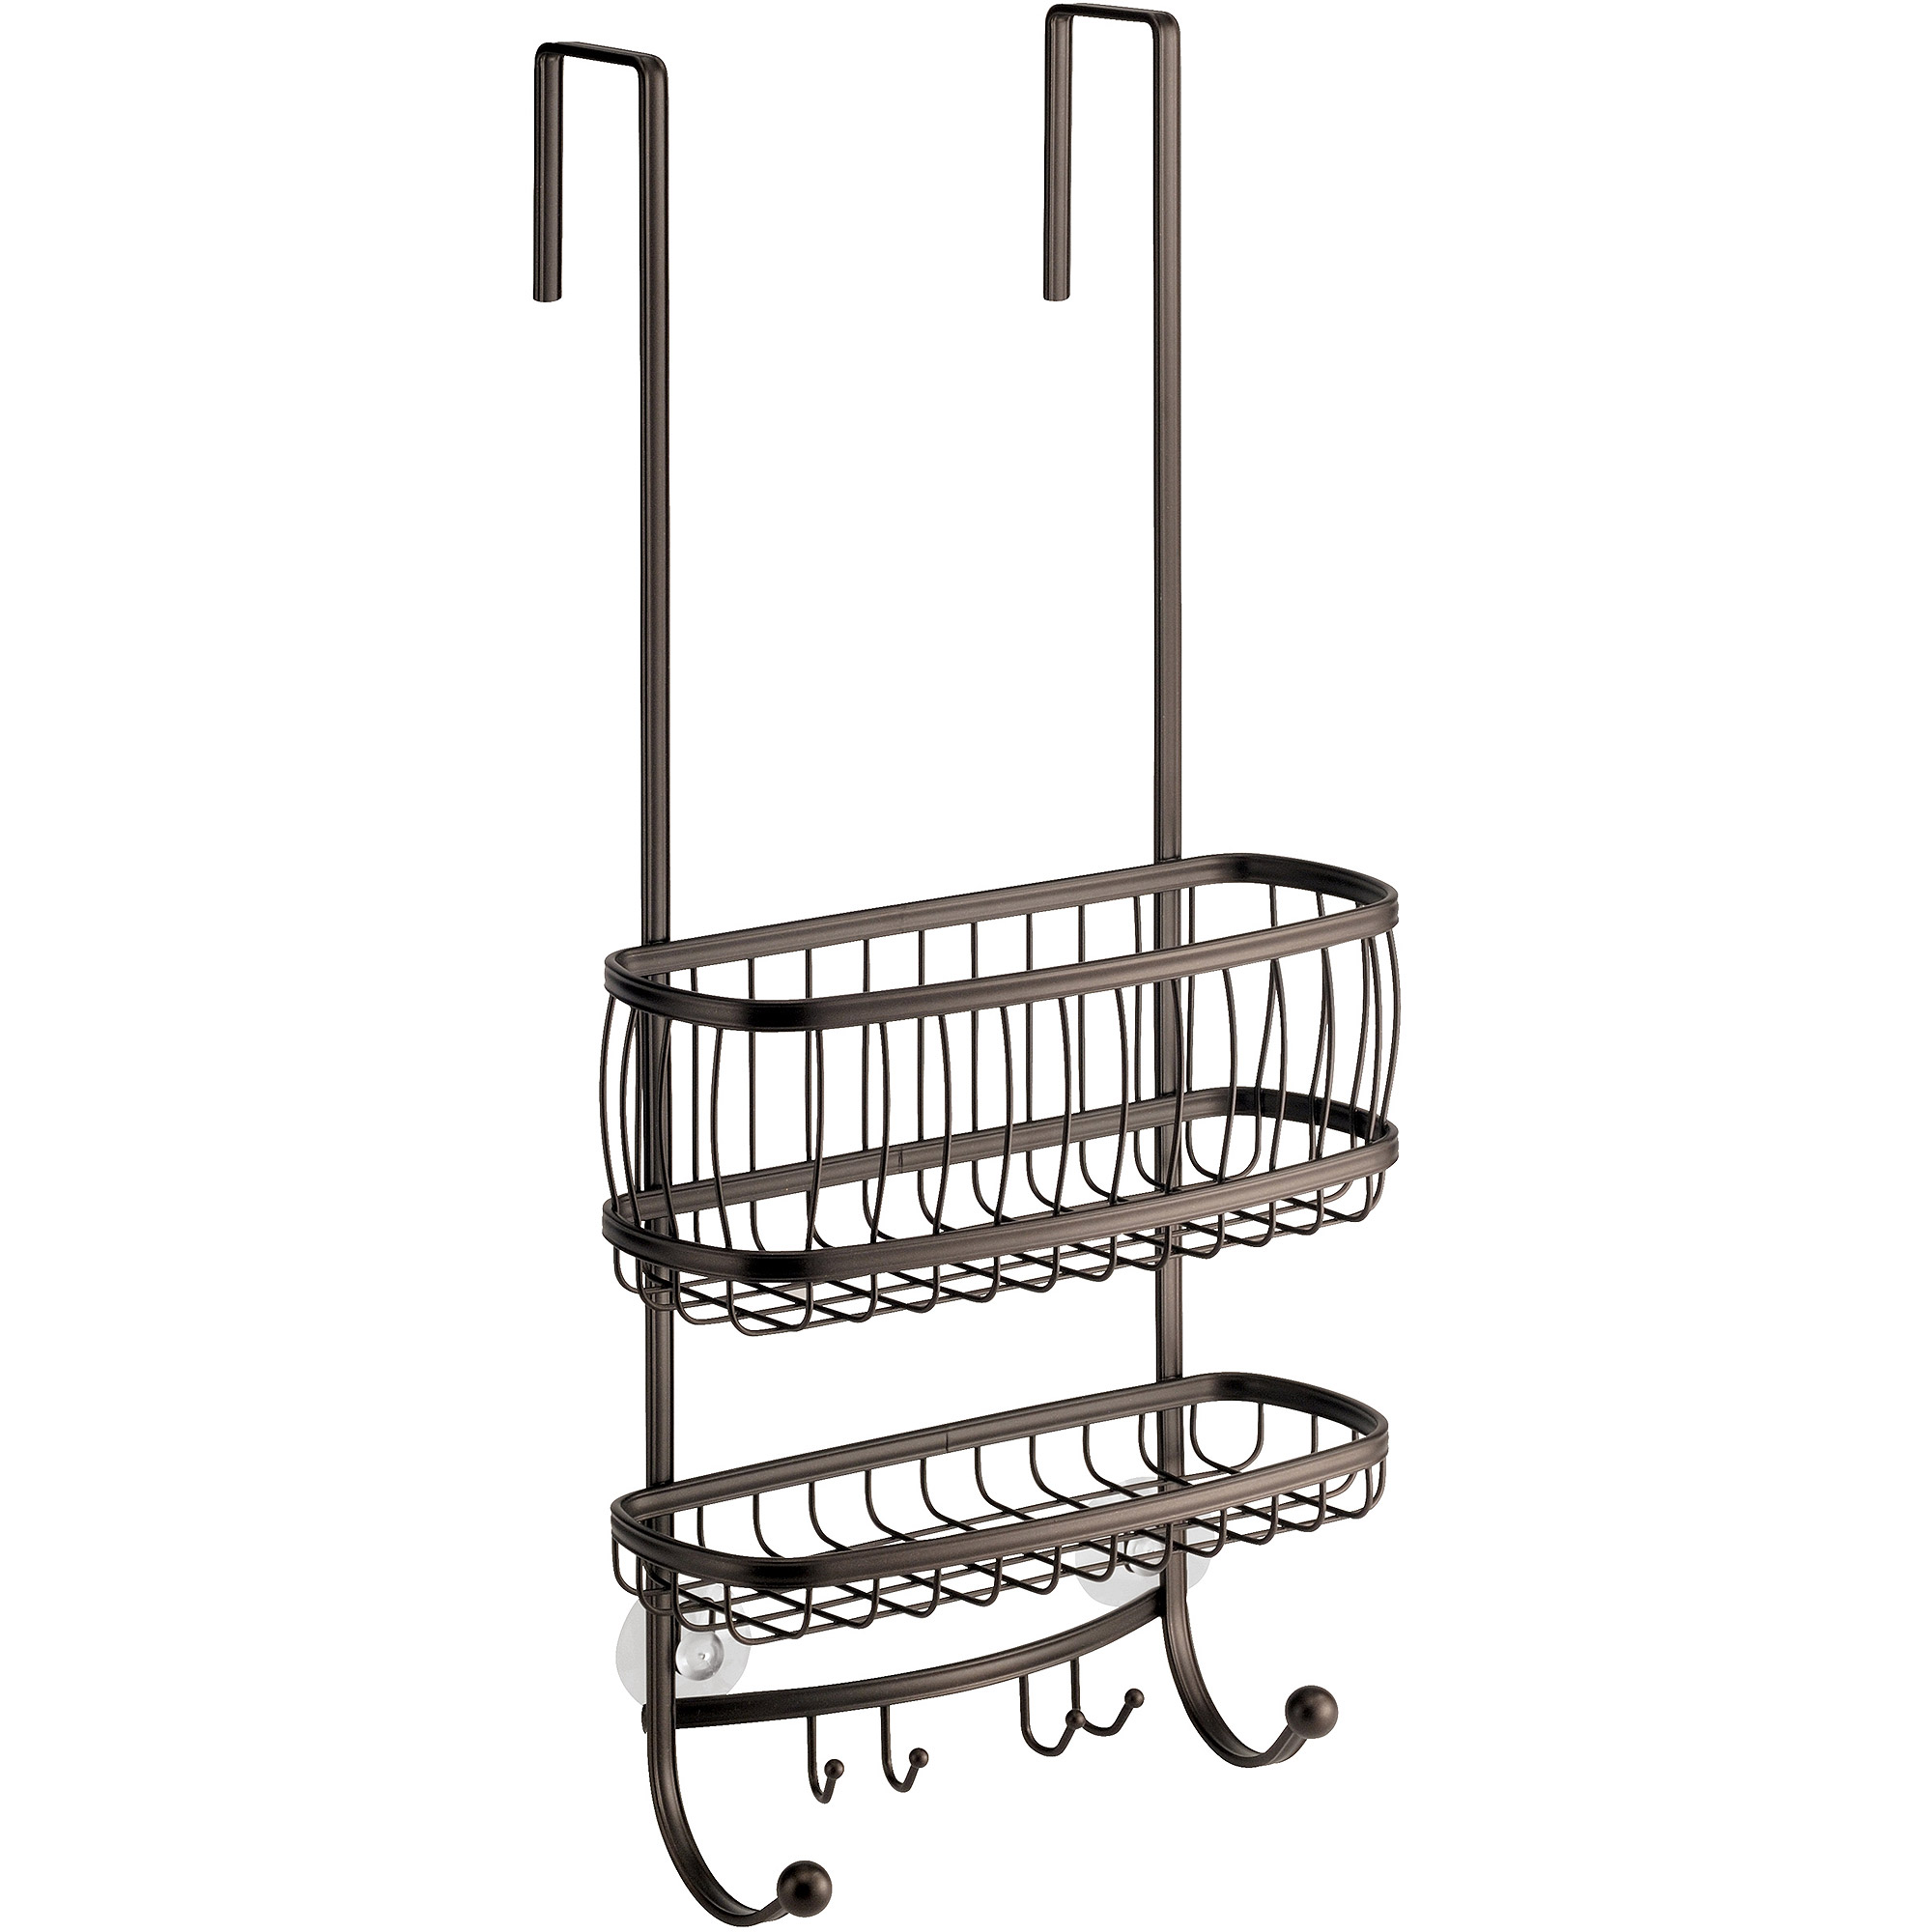 InterDesign York Over-the-Shower Door Shower Caddy - Walmart.com